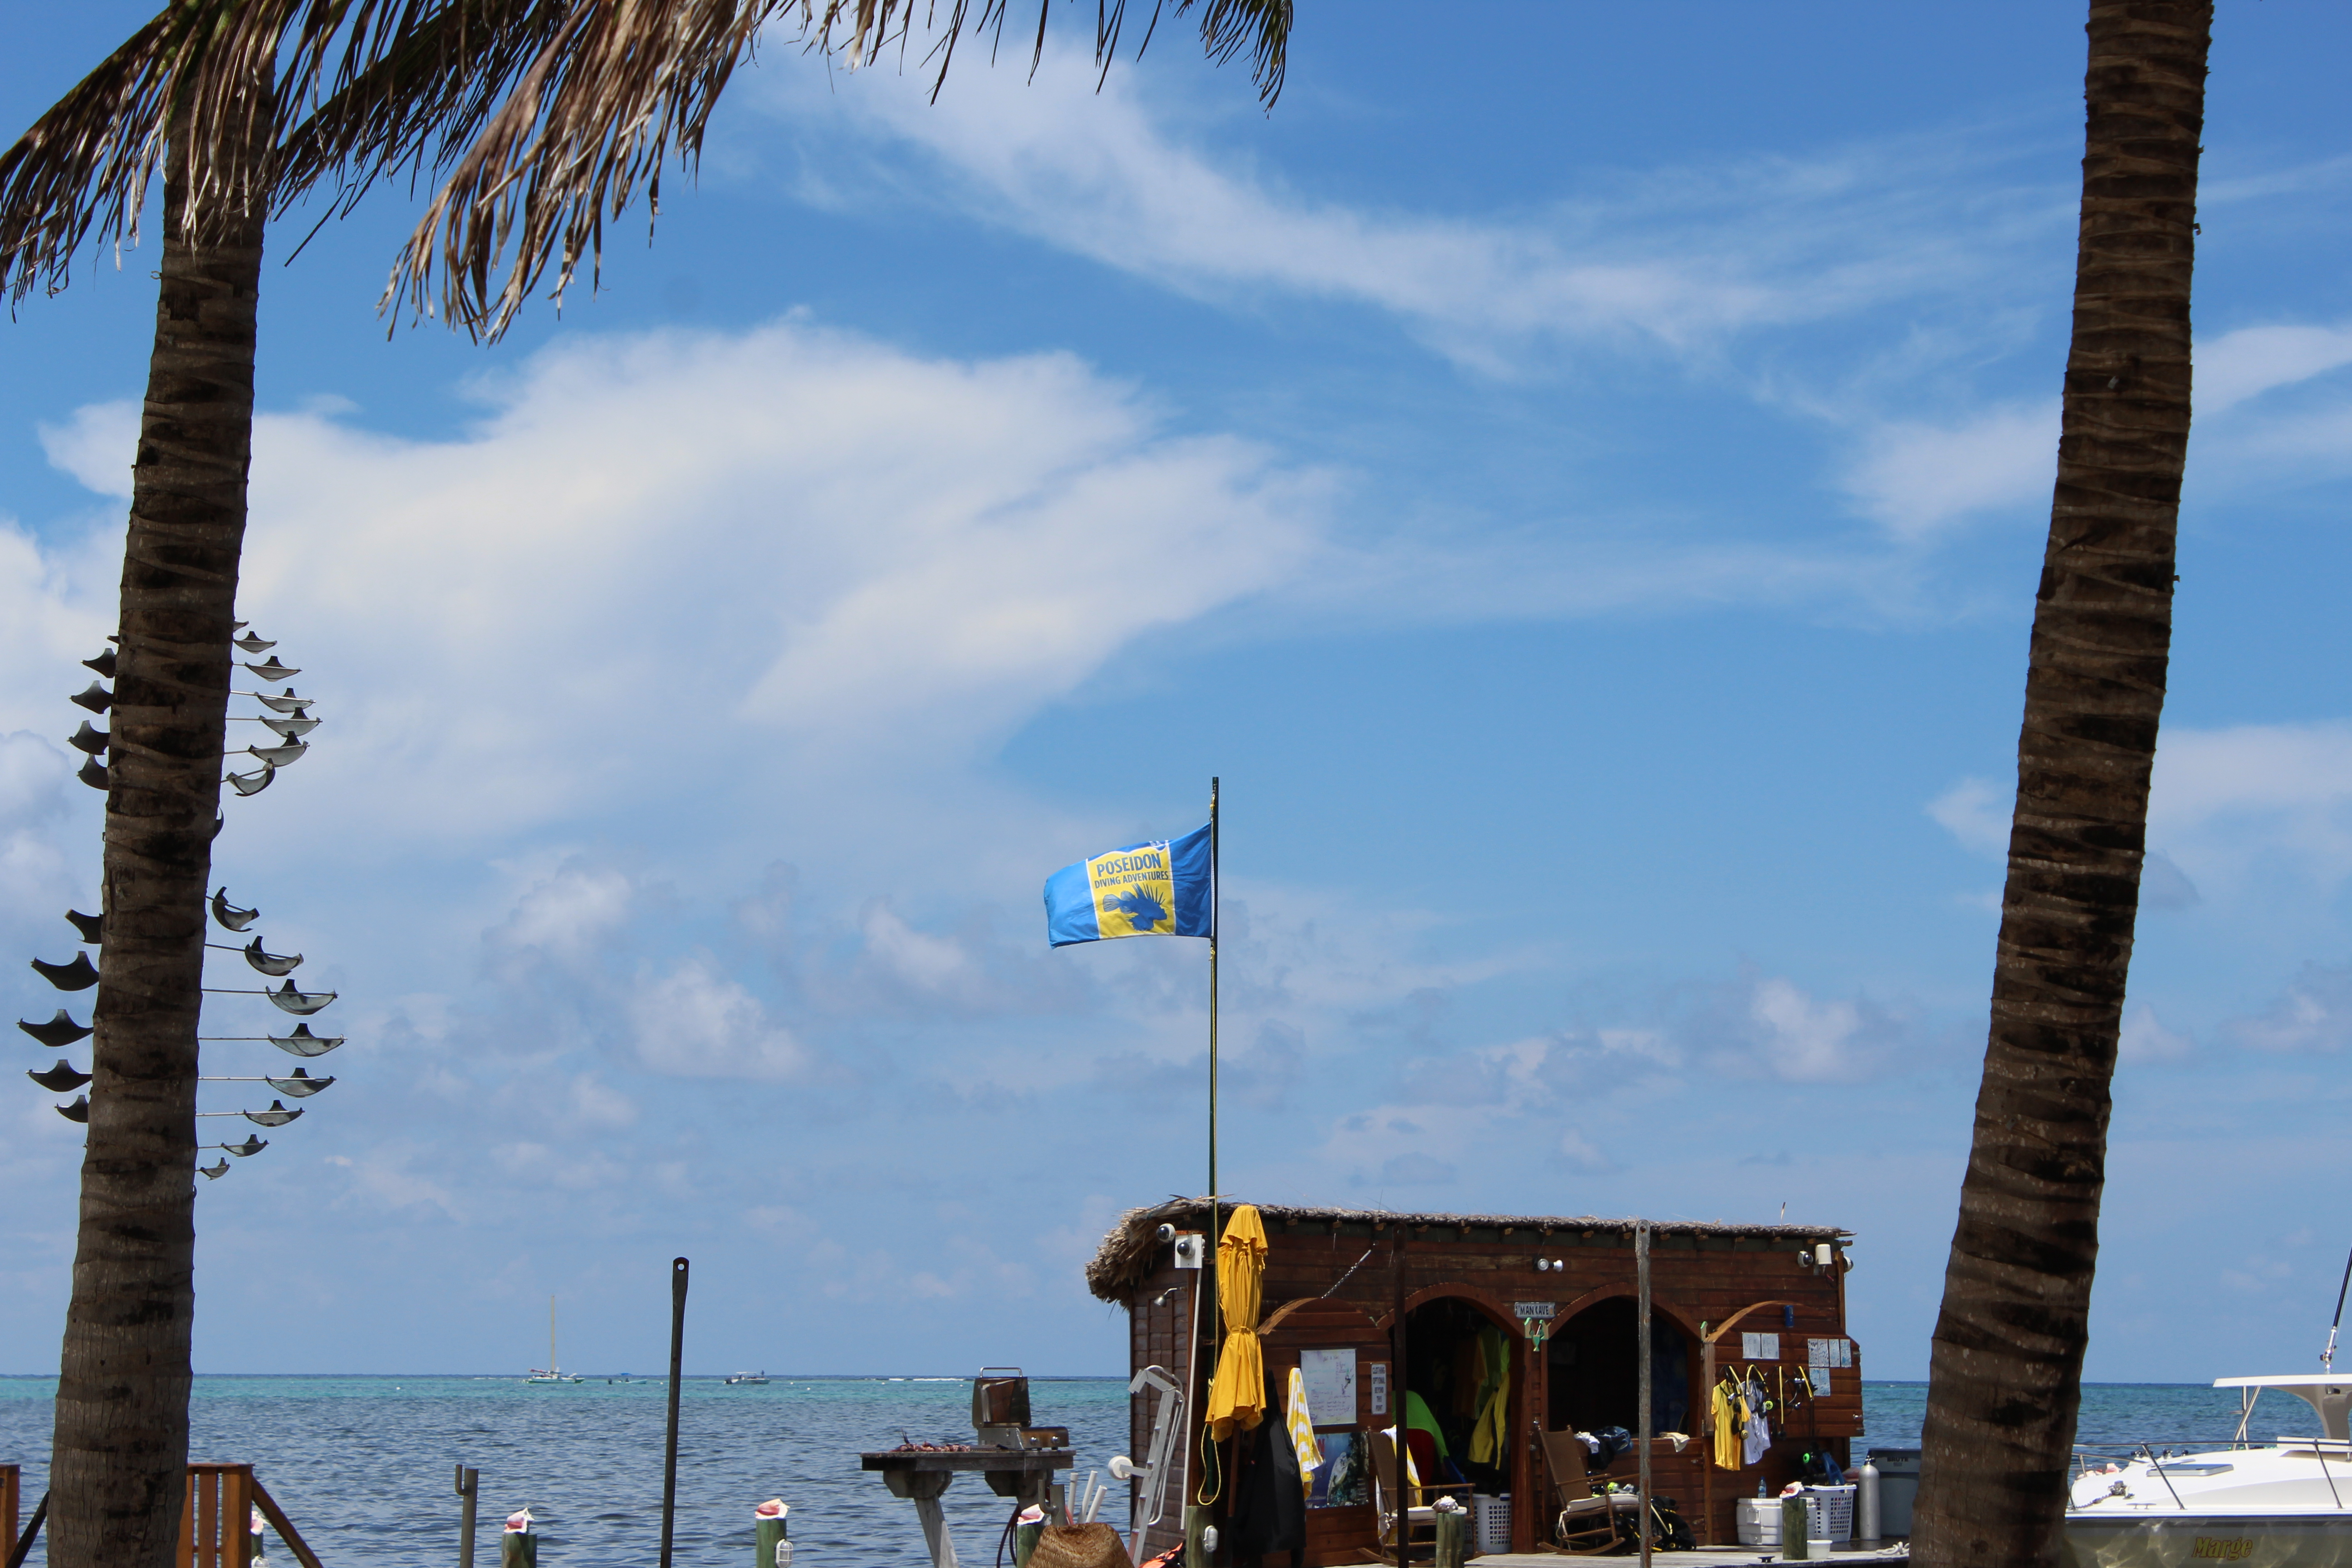 Poseidon Belize at Canary Cove: Private Powerboat Excursions